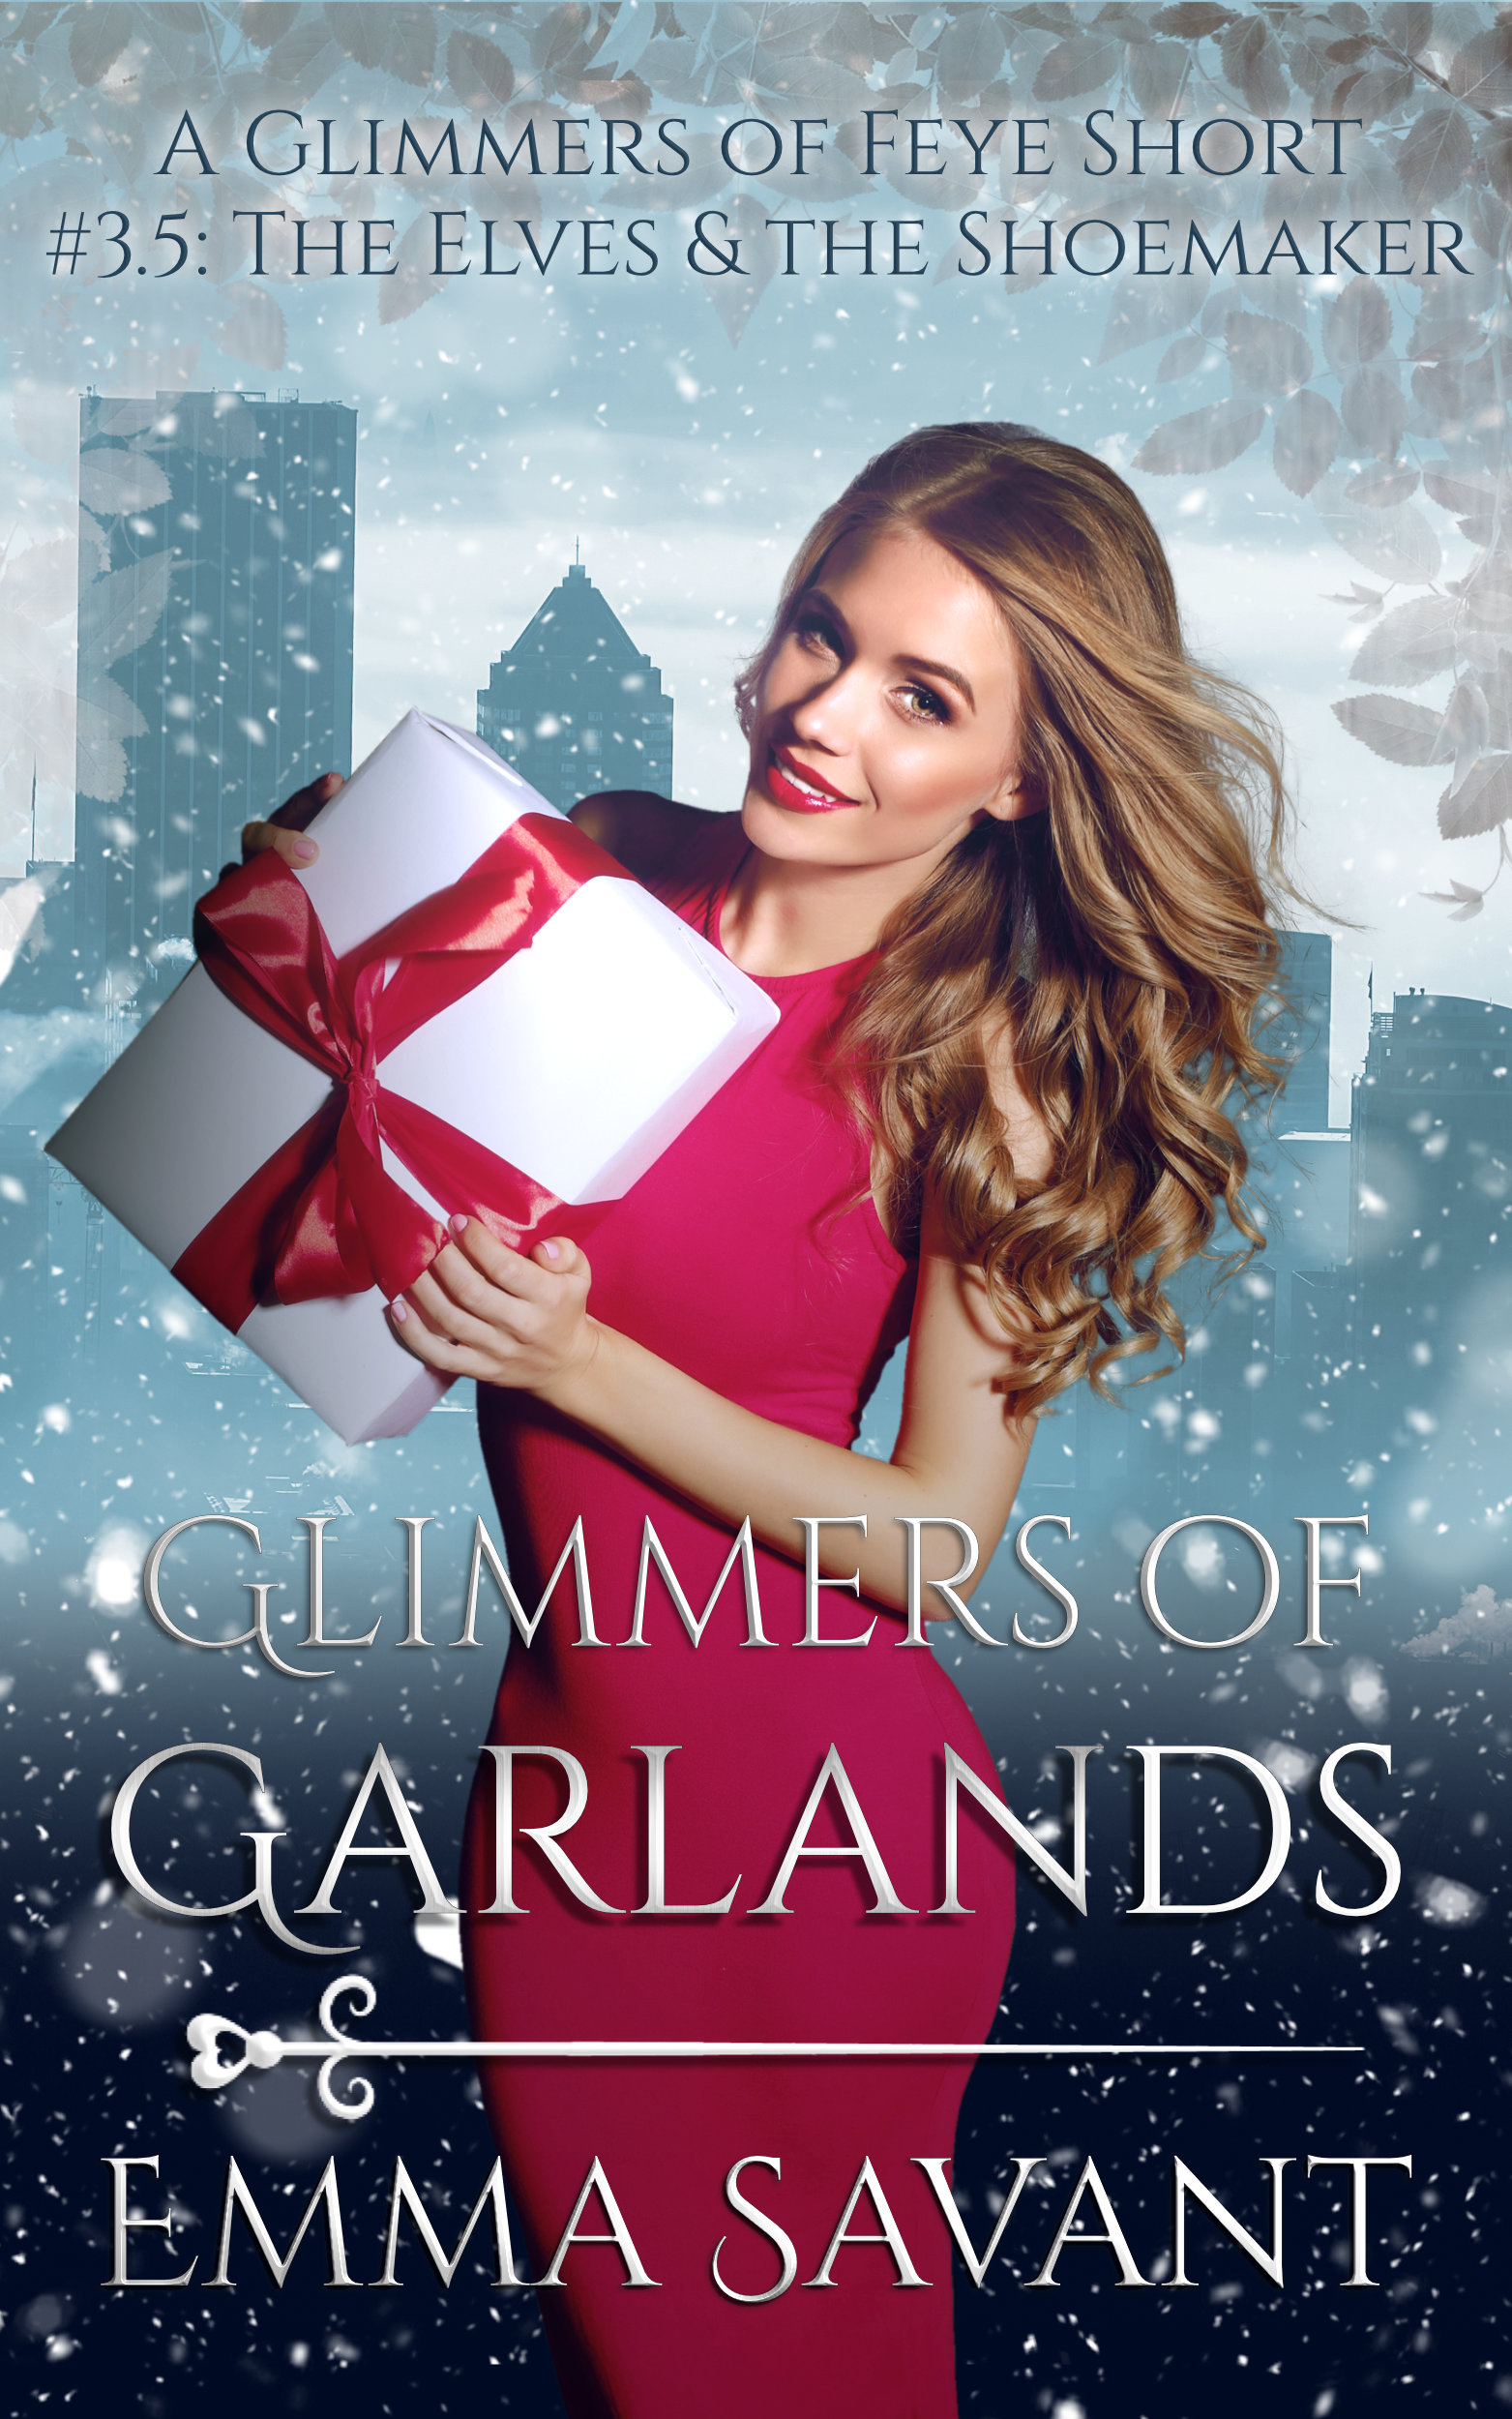 Glimmers of Garlands by Emma Savant